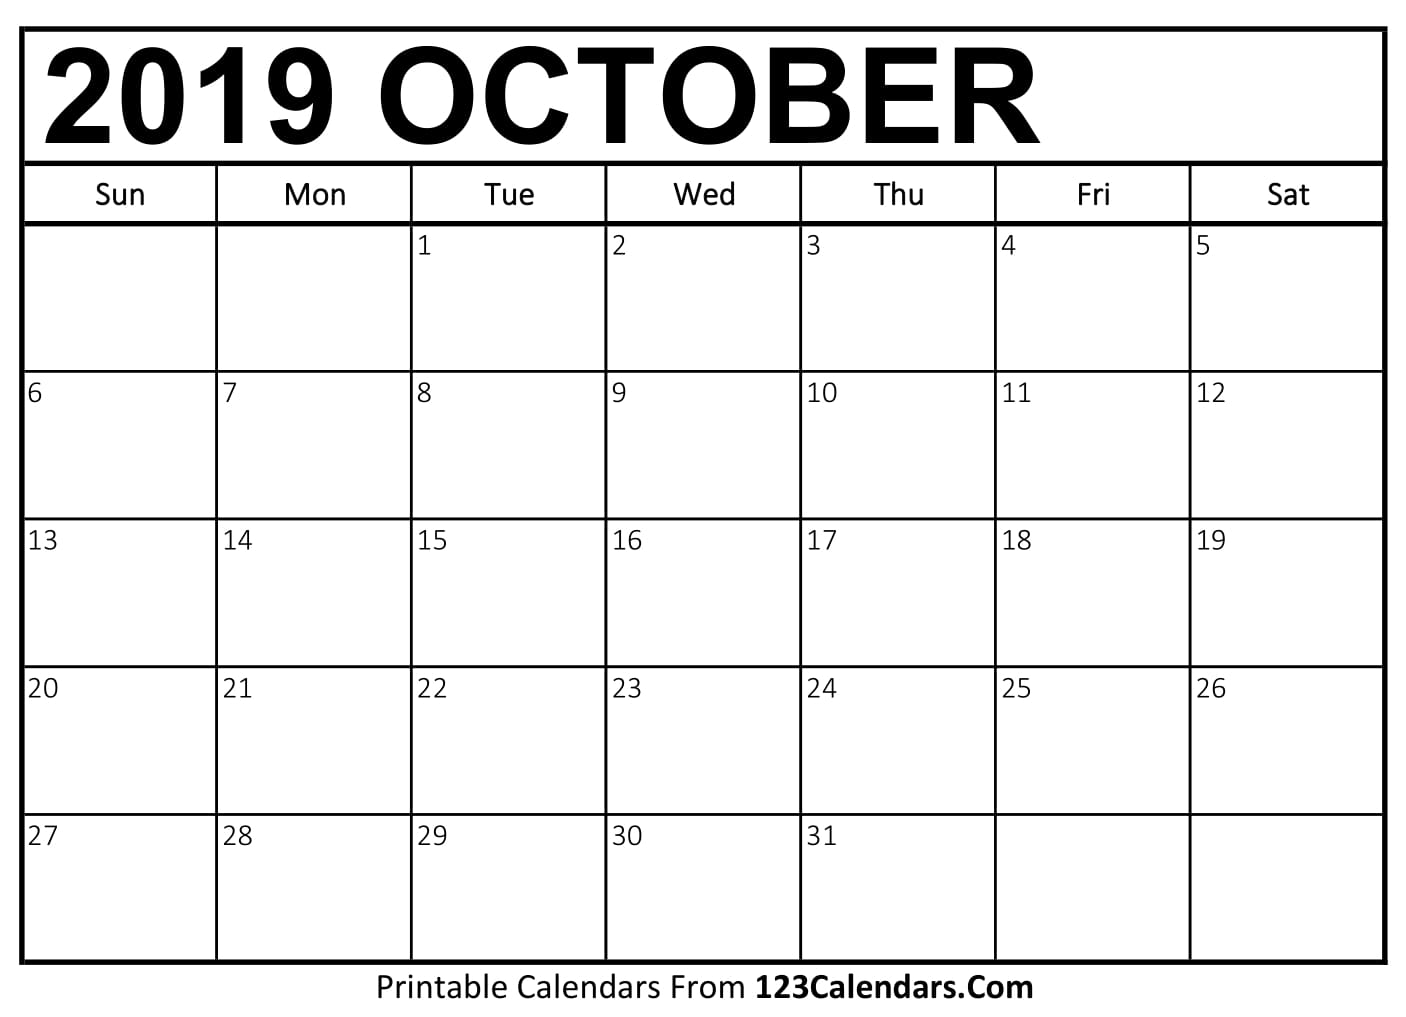 graphic relating to October Calendar Printable called Oct 2019 Printable Calendar